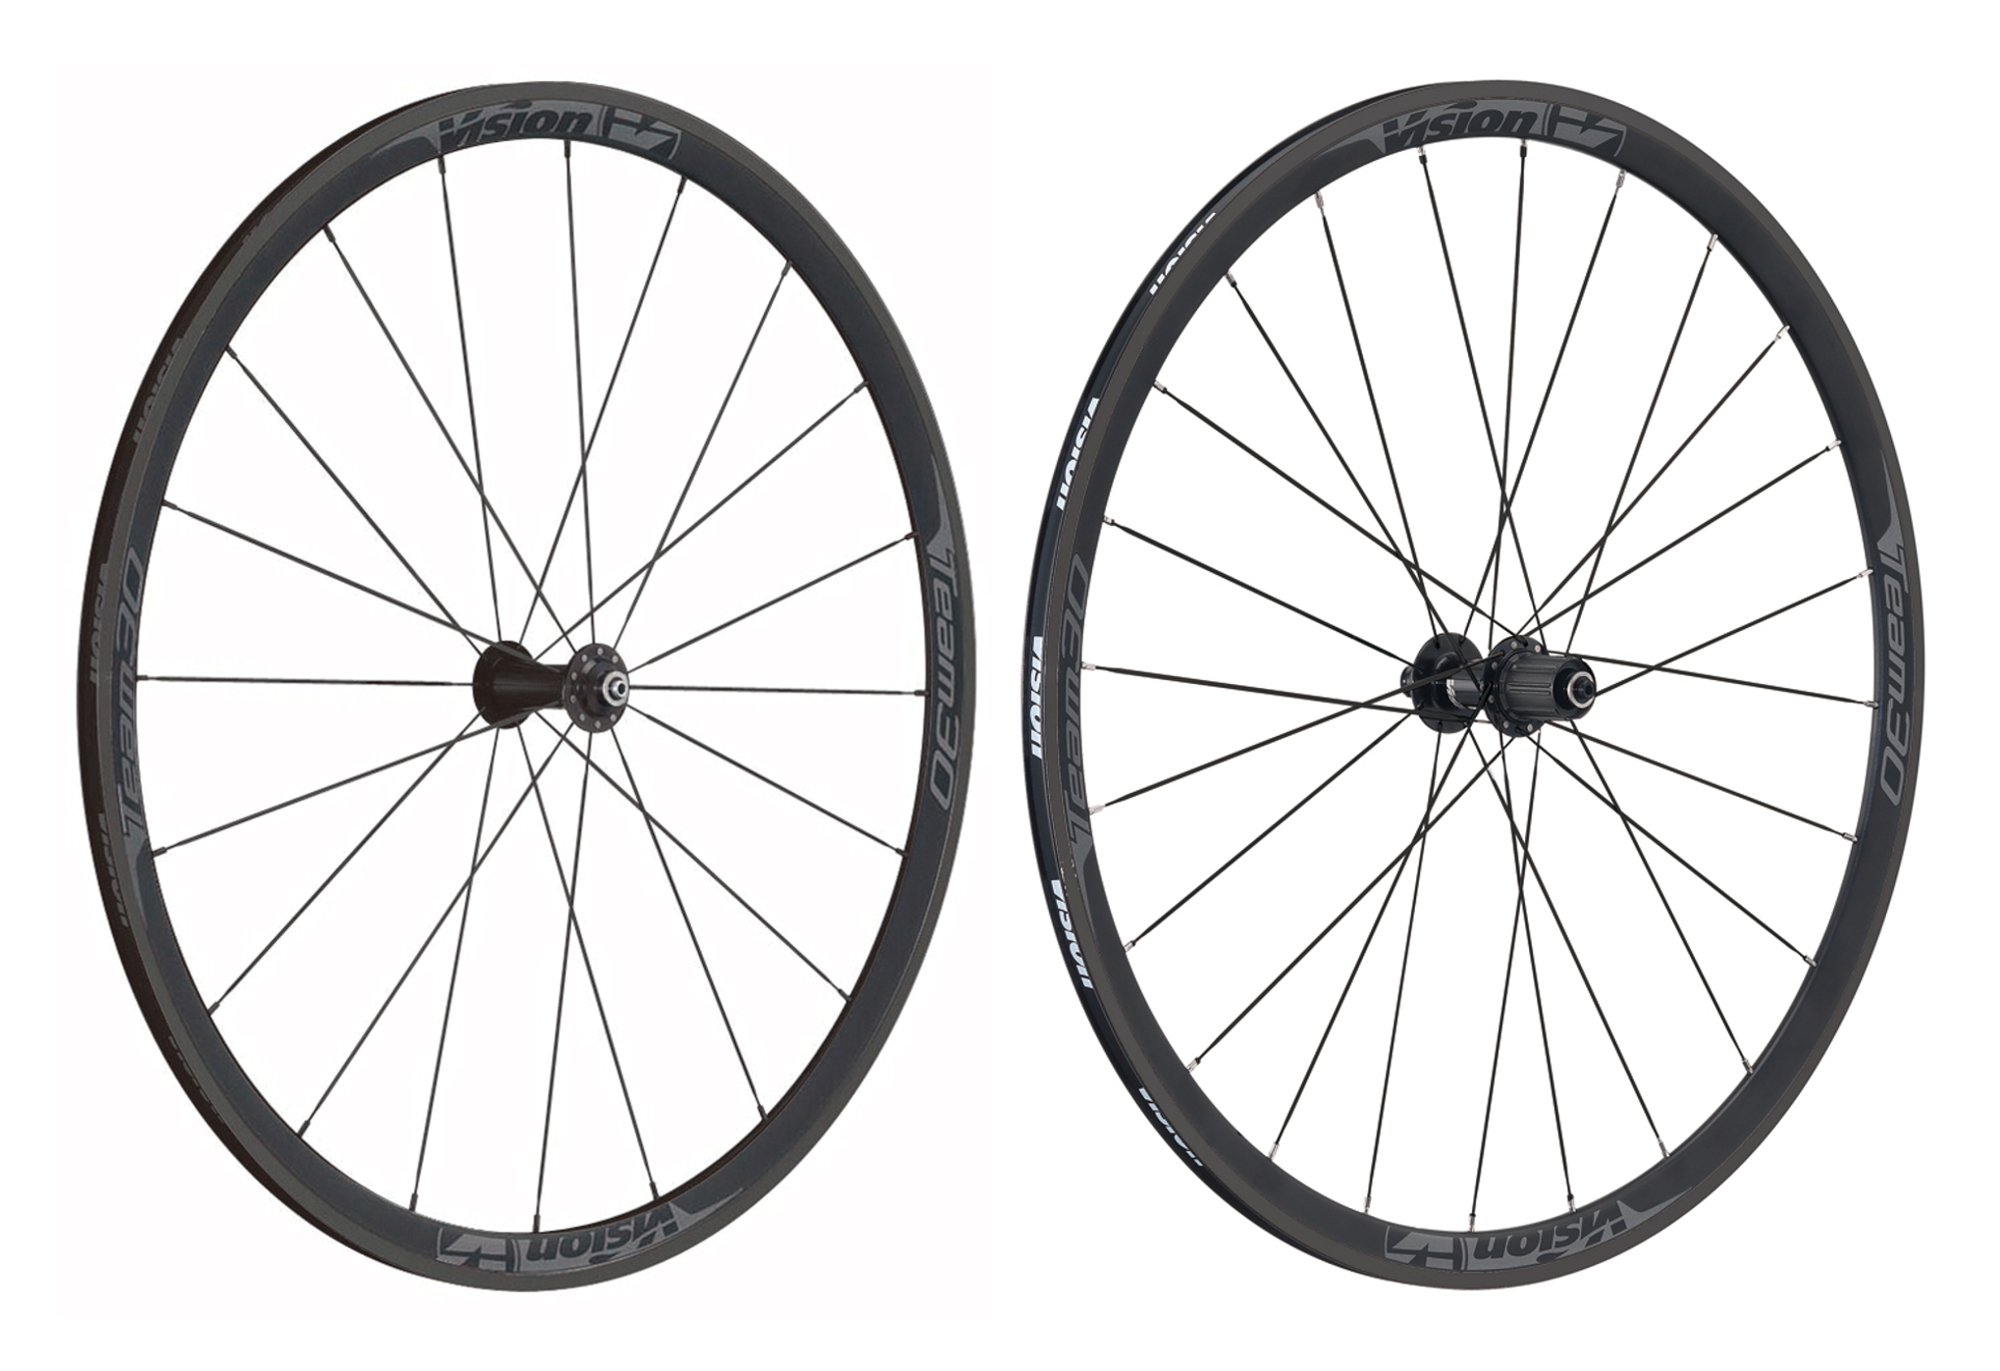 Race To 100000 Fans Giveaway 2 in addition P 216790 Wheelset vision team 30  p   body shimano sram   black as well Coloring Cars together with A Maze Zing further Gorgeous Gort 8k. on the amazing race route